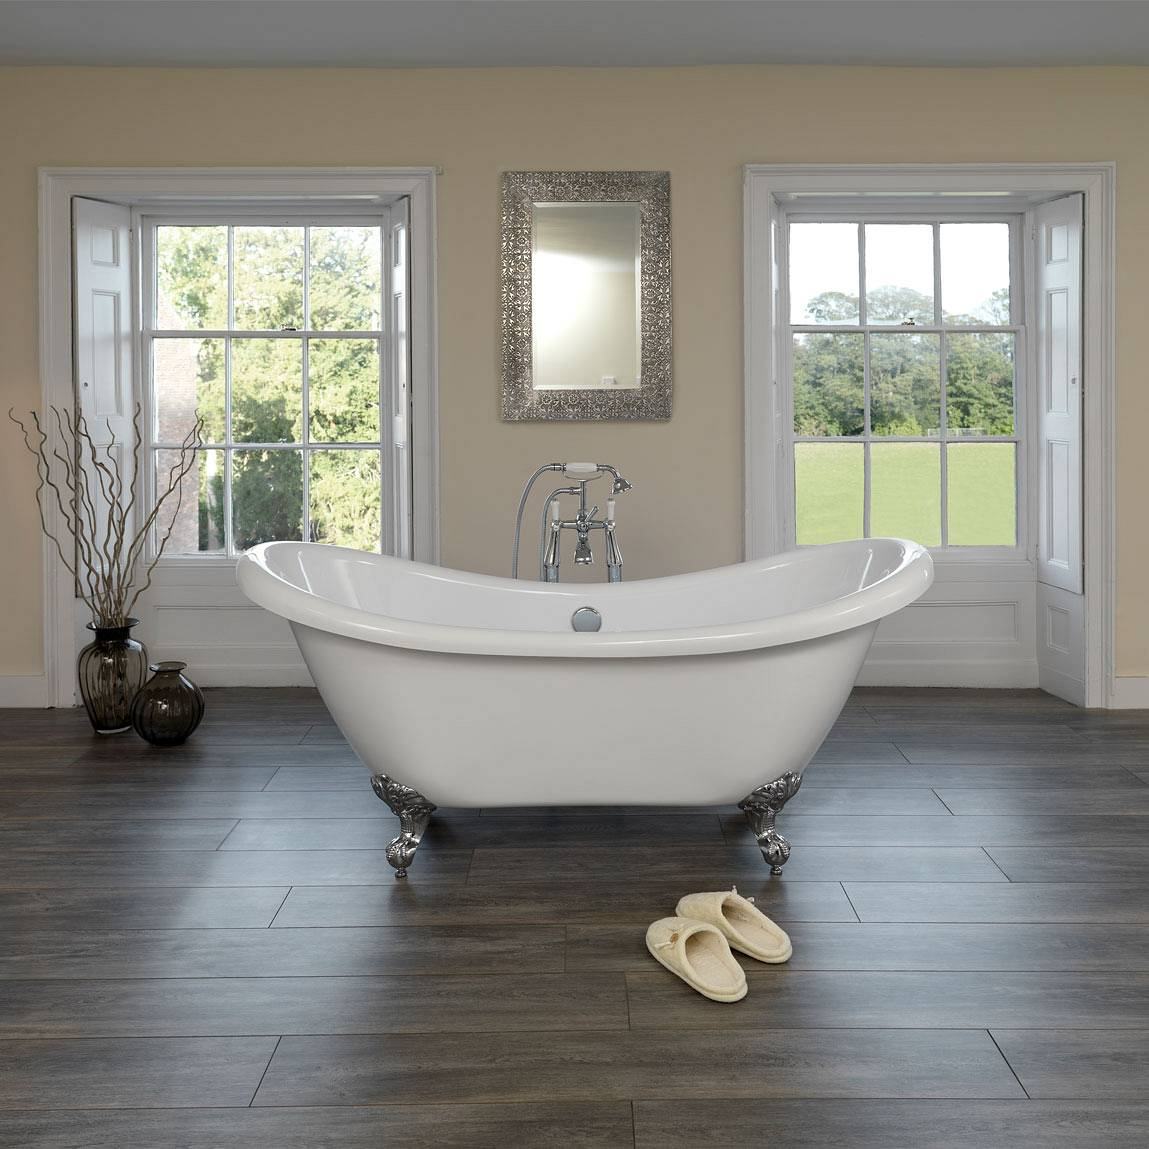 Liberty-Double-Ended-Slipper-Bath_7